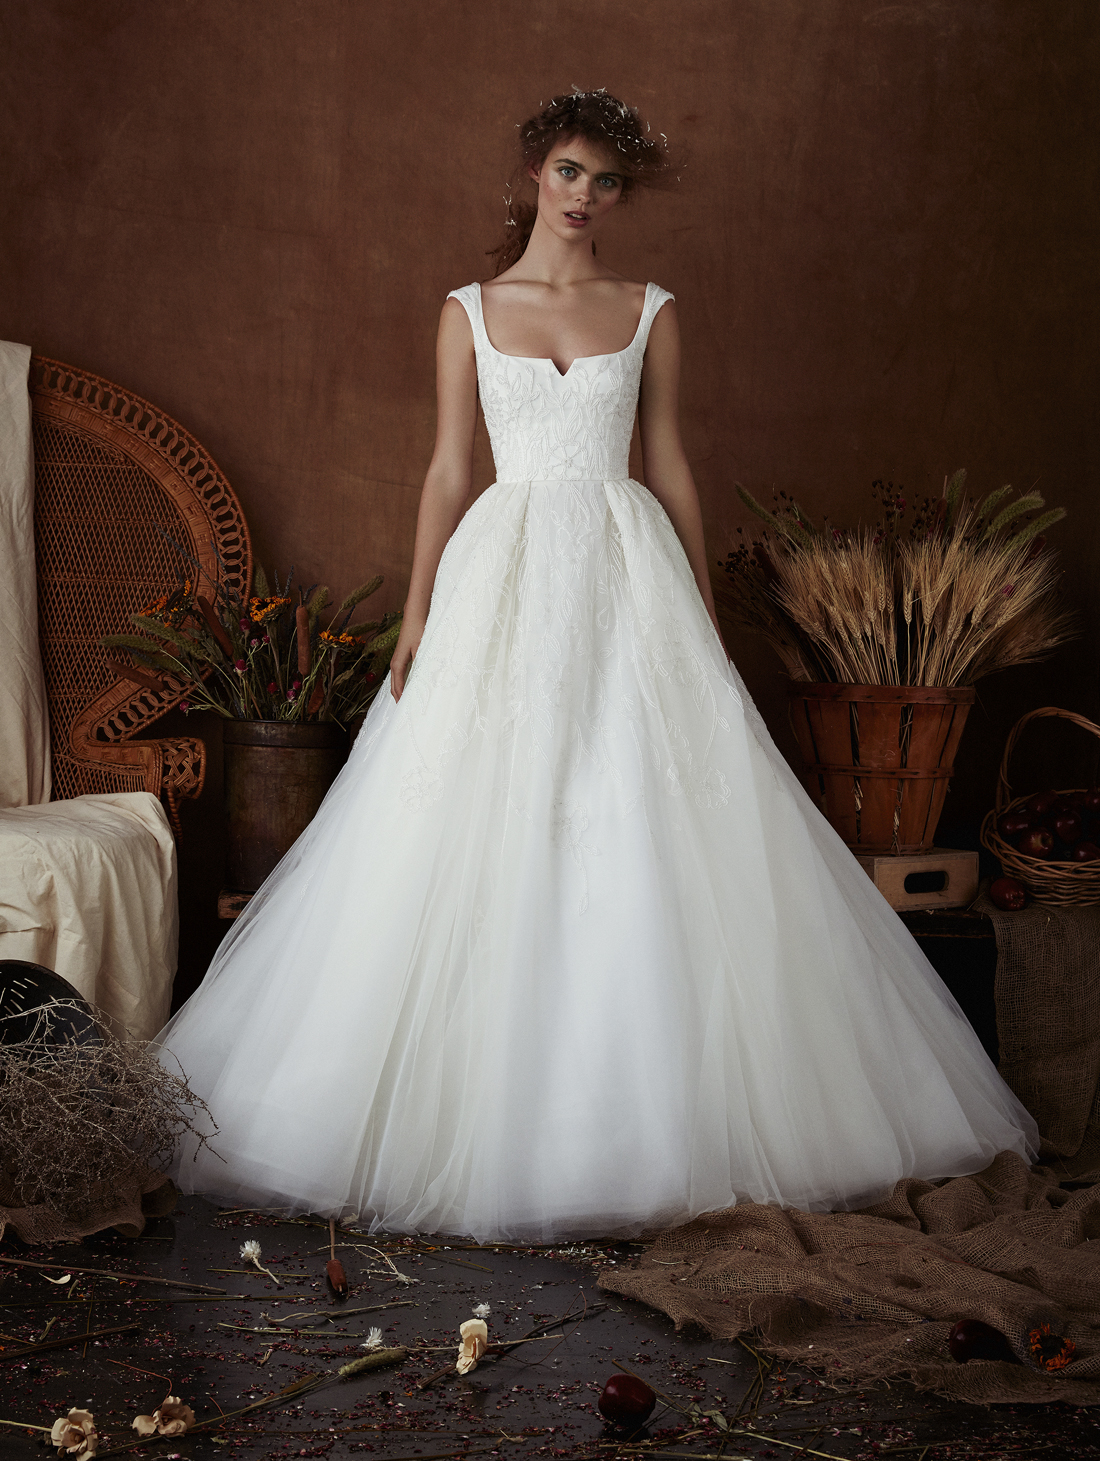 Isabelle armstrong spring 2018 chloe inside weddings isabelle armstrong spring 2018 bridal collection chloe cap sleeve ball gown wedding dress ombrellifo Gallery